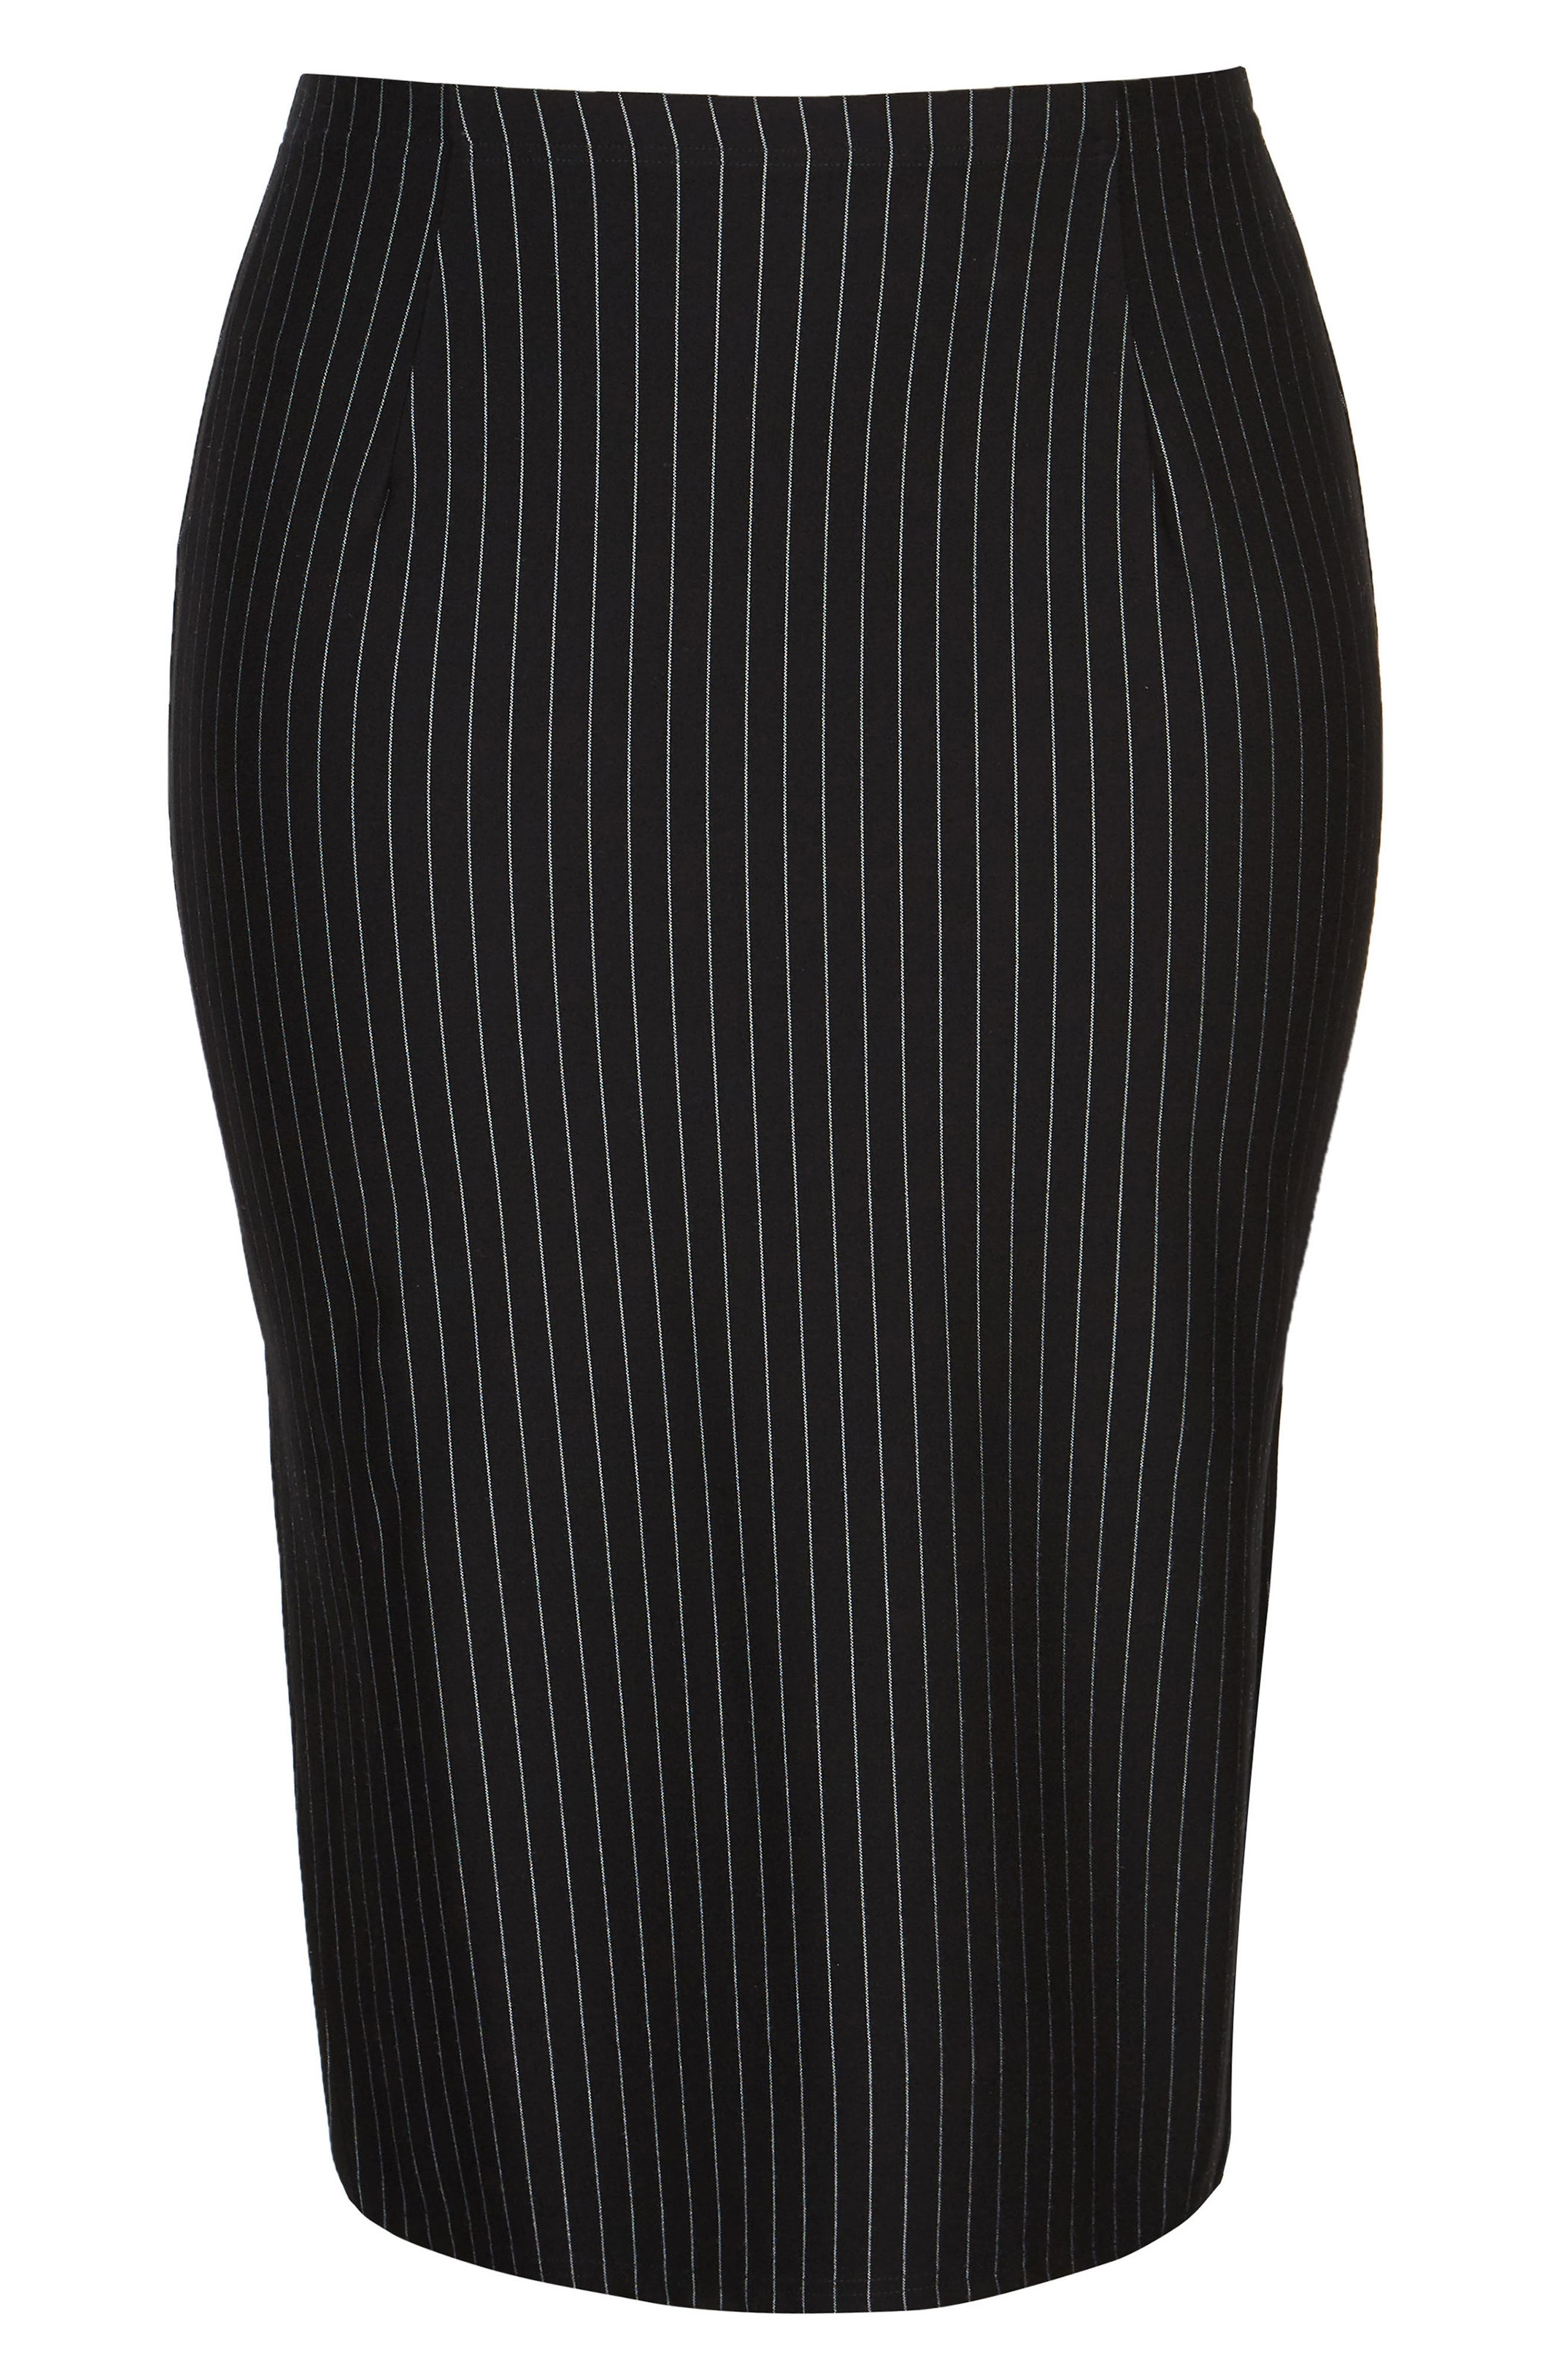 Chic City On Point Pencil skirt,                             Alternate thumbnail 3, color,                             Pin Stripe